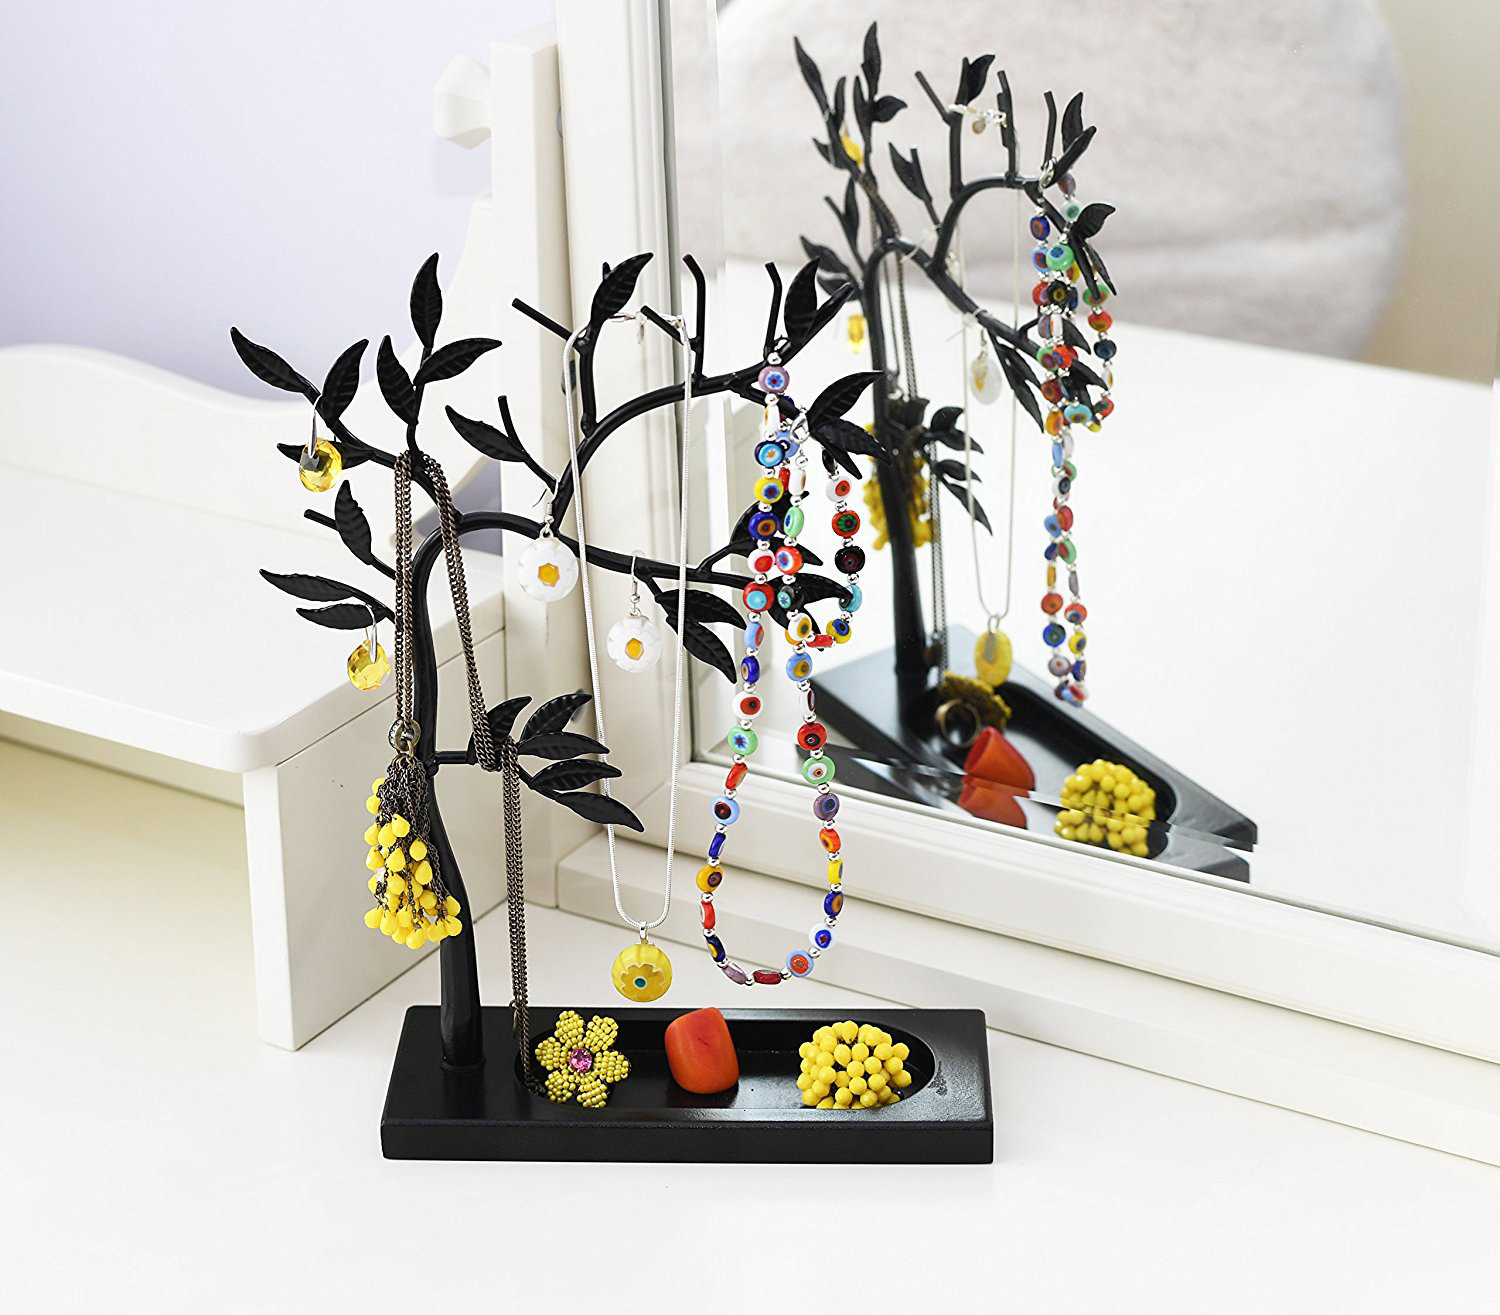 Minimalist Black Medium Jewelry Tree Holder with Accessory Tray